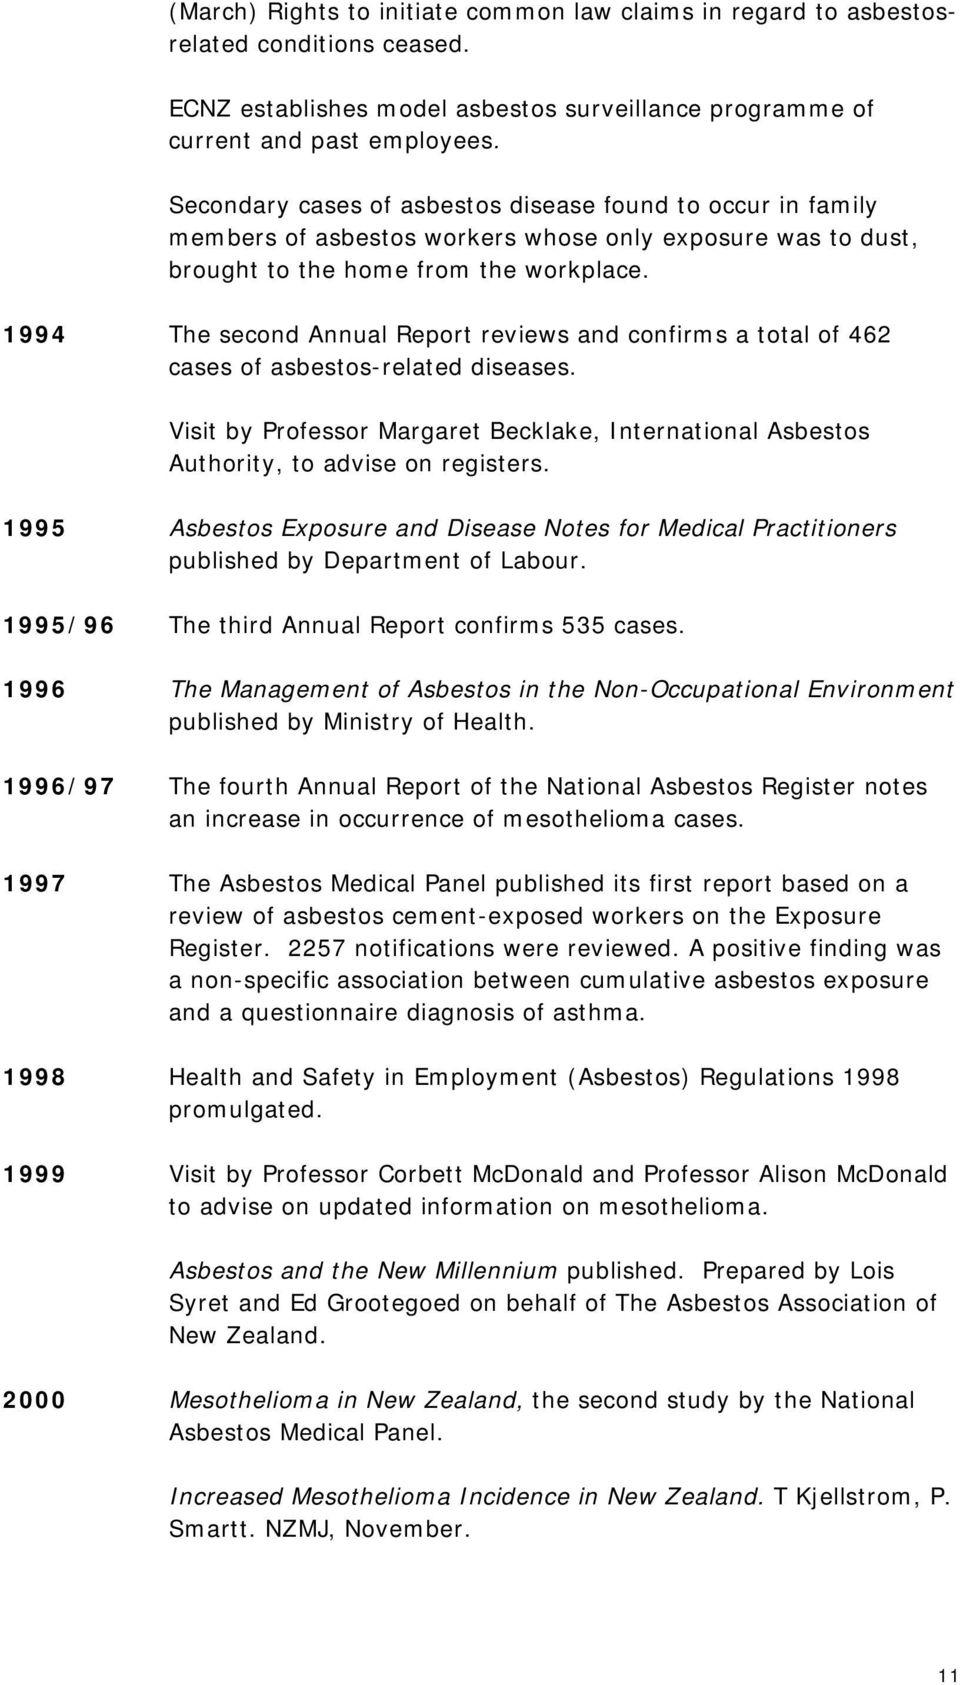 1994 The second Annual Report reviews and confirms a total of 462 cases of asbestos-related diseases. Visit by Professor Margaret Becklake, International Asbestos Authority, to advise on registers.